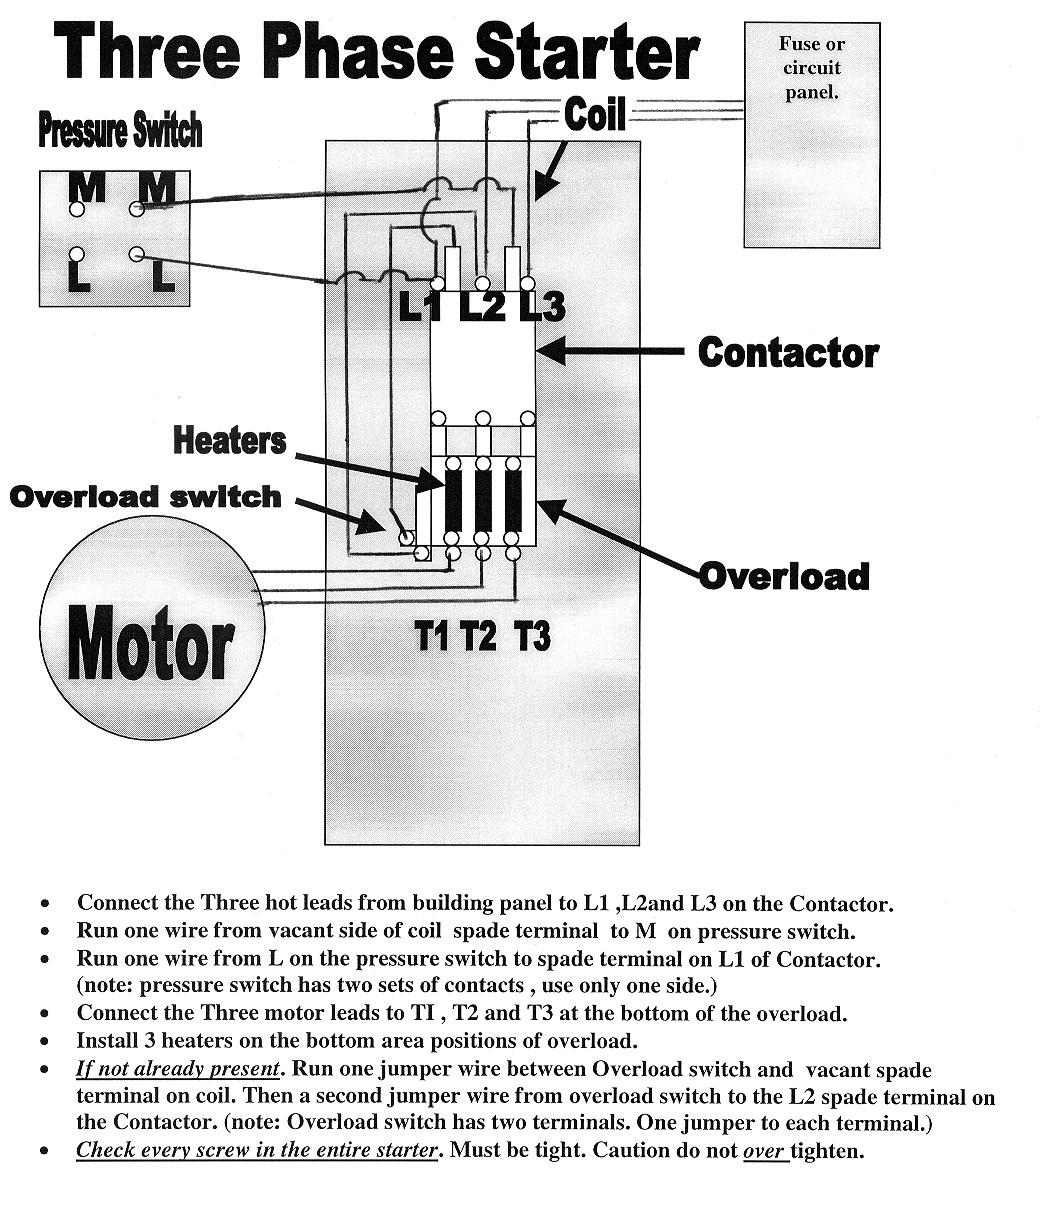 hight resolution of  converter wiring diagram on 3 phase wire diagrams seiman wiring liry diagram h7 on floating wall construction diagram